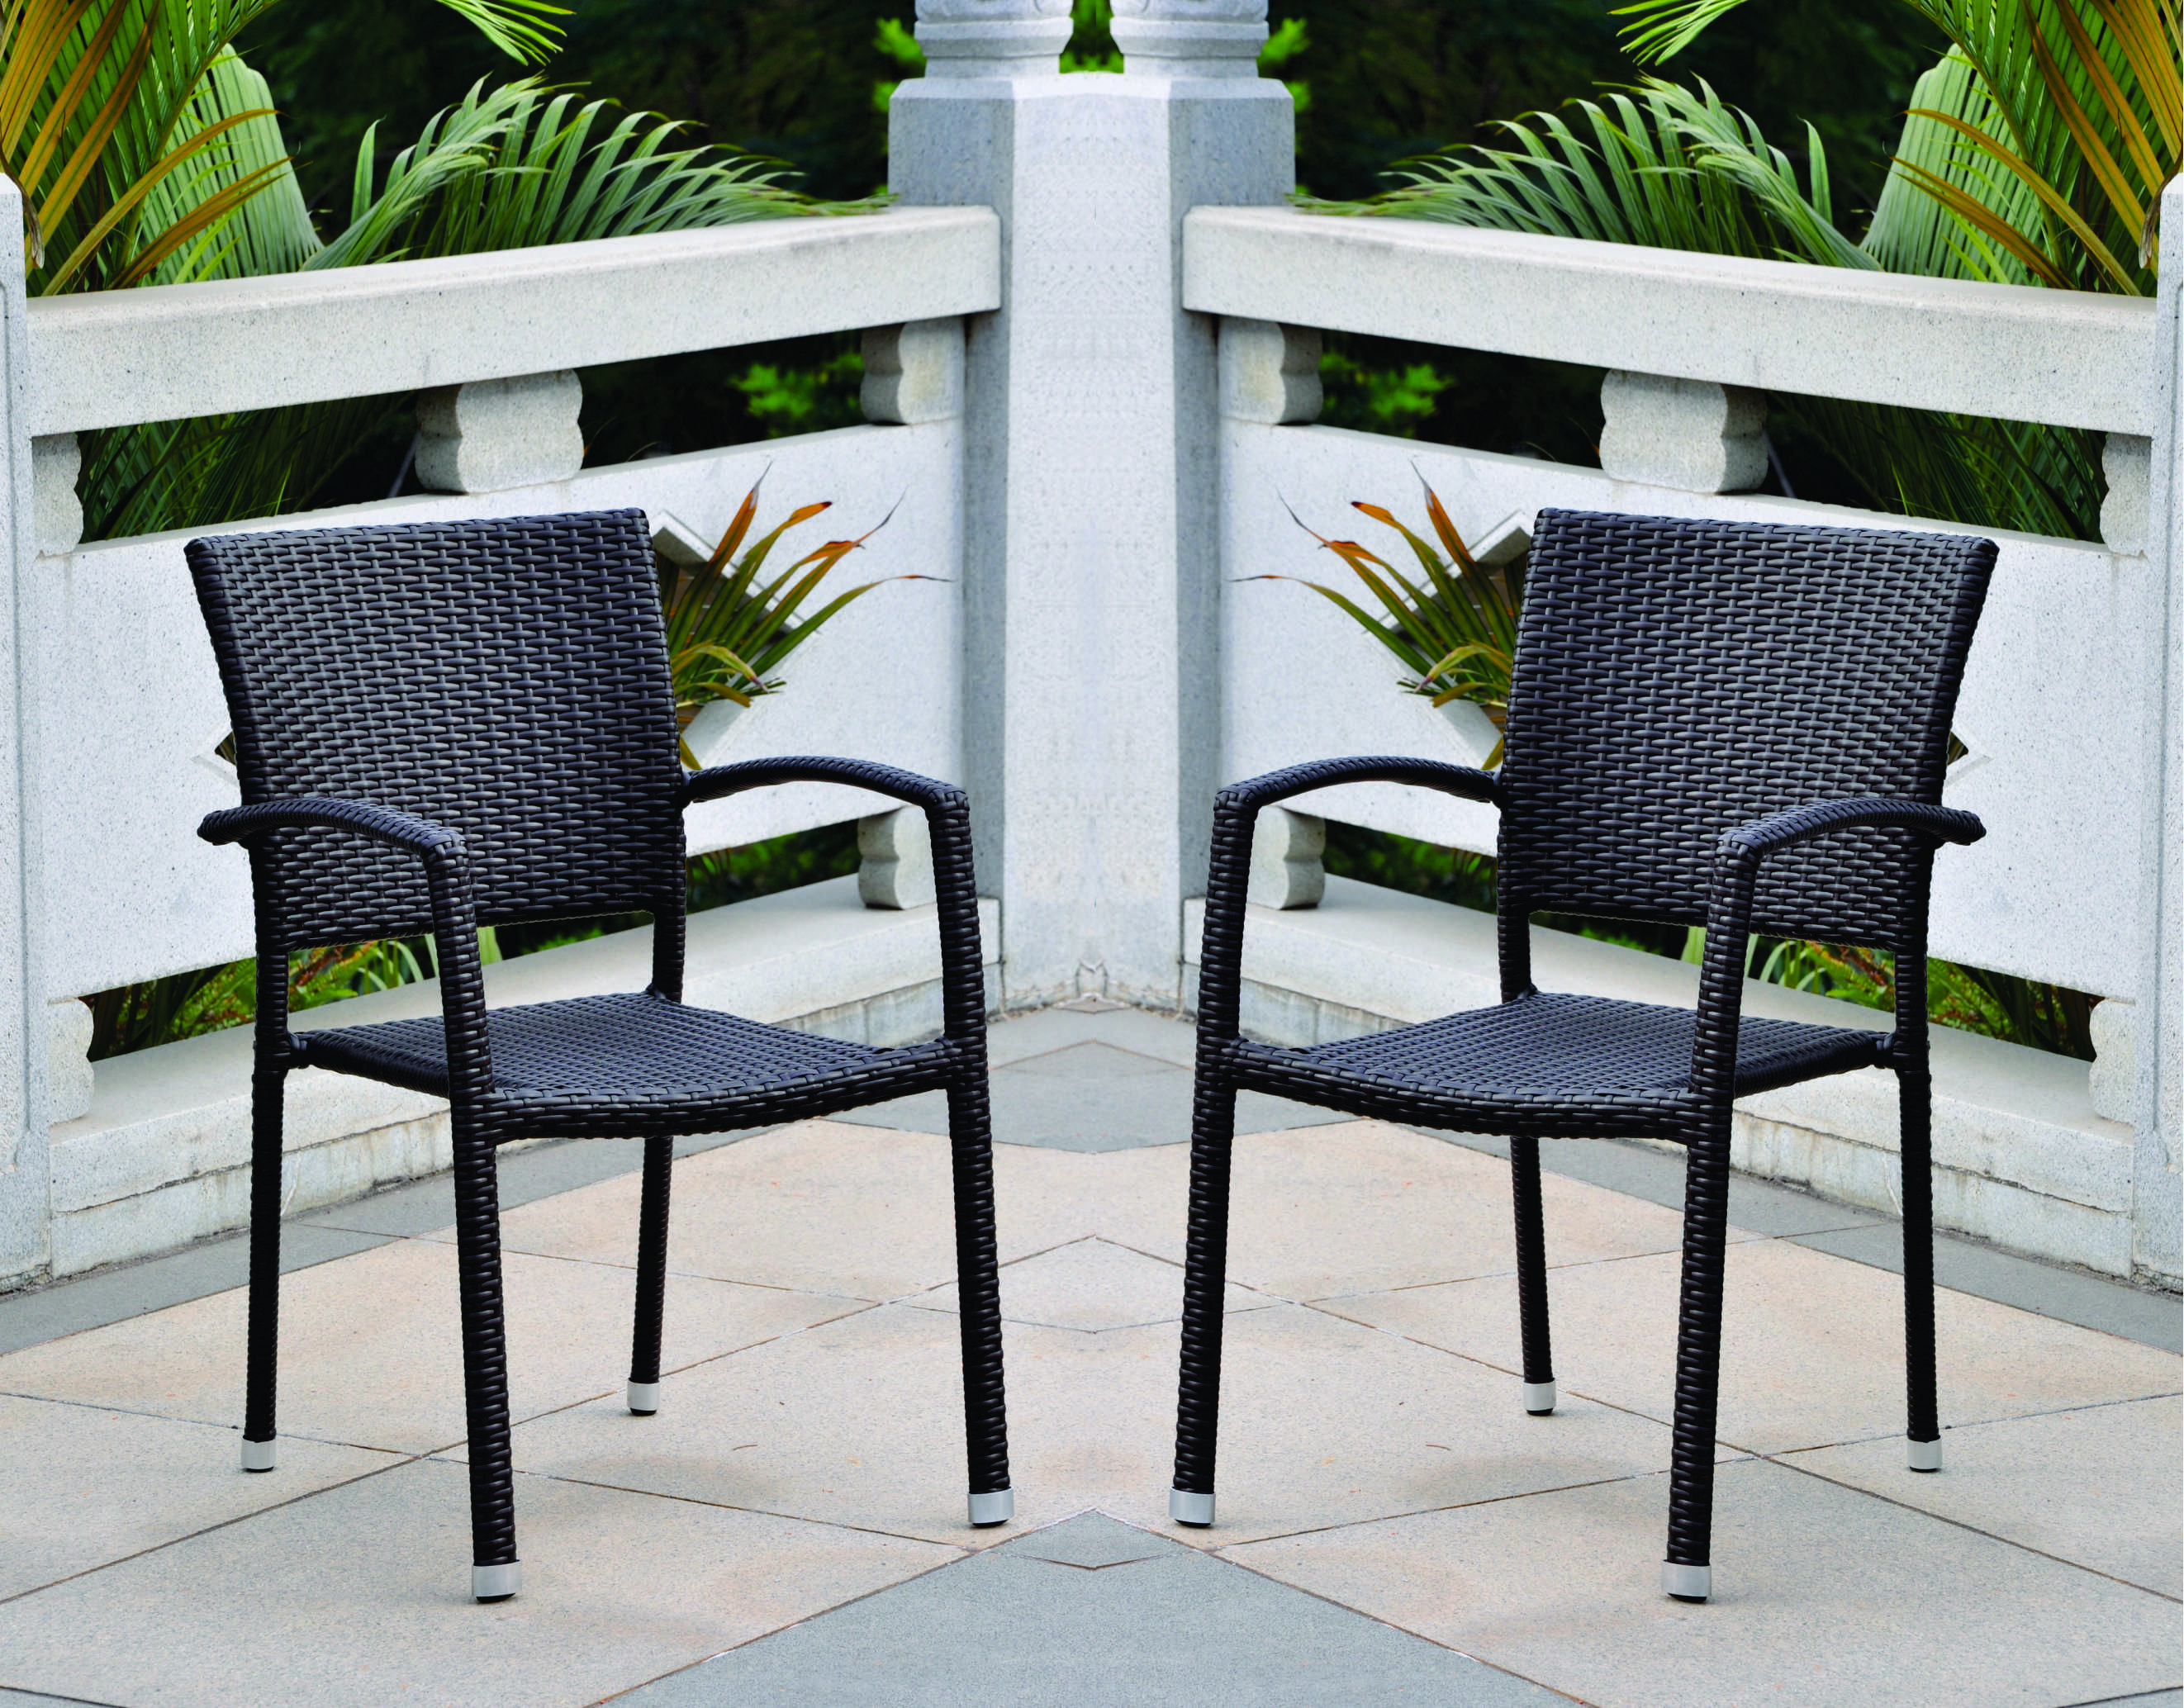 Plastic Wicker Chairs Visit More At Http Adazed Com Plastic Wicker Chairs 45925 Wicker Furniture Repair Resin Wicker Furniture Wicker Furniture